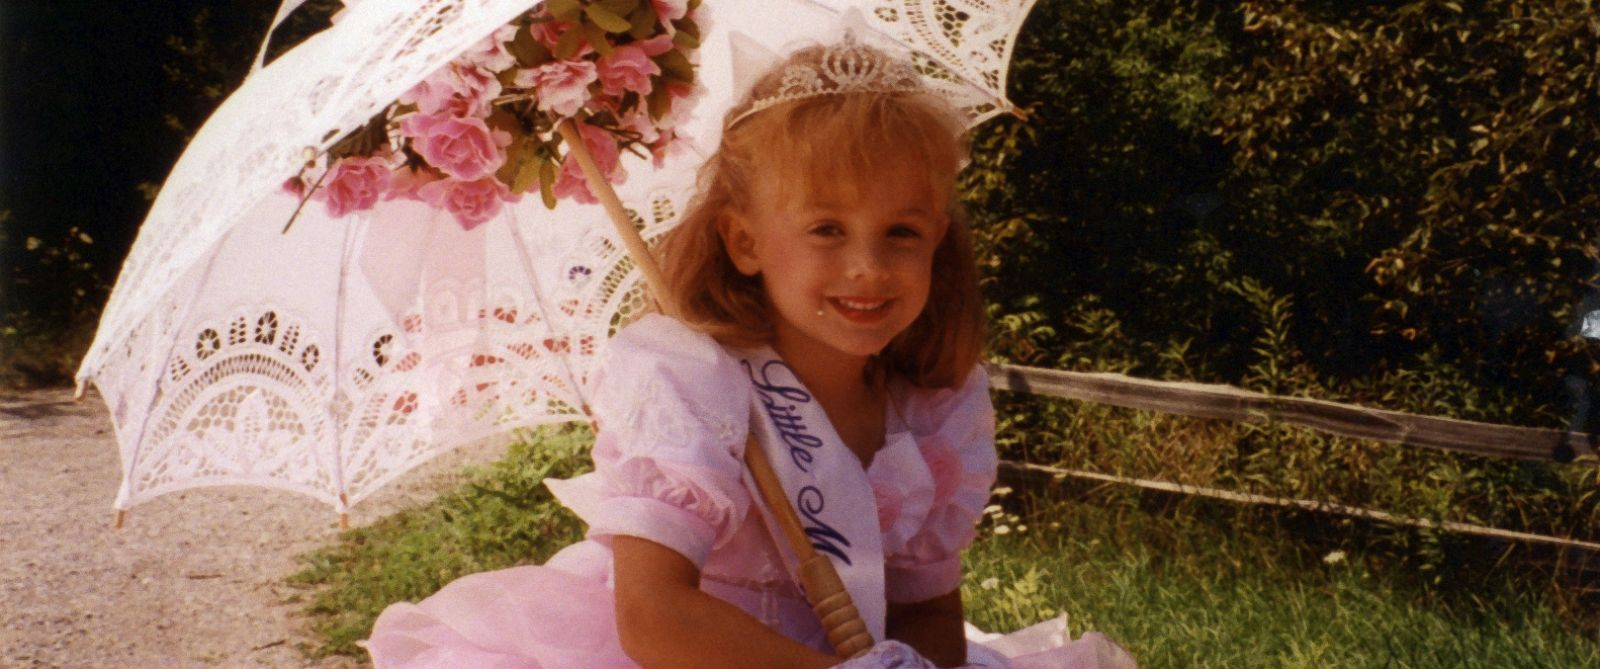 We Live In An Age Of Universal Investigation And Of: Investigation Into JonBenet Ramsey's Murder Remains Open